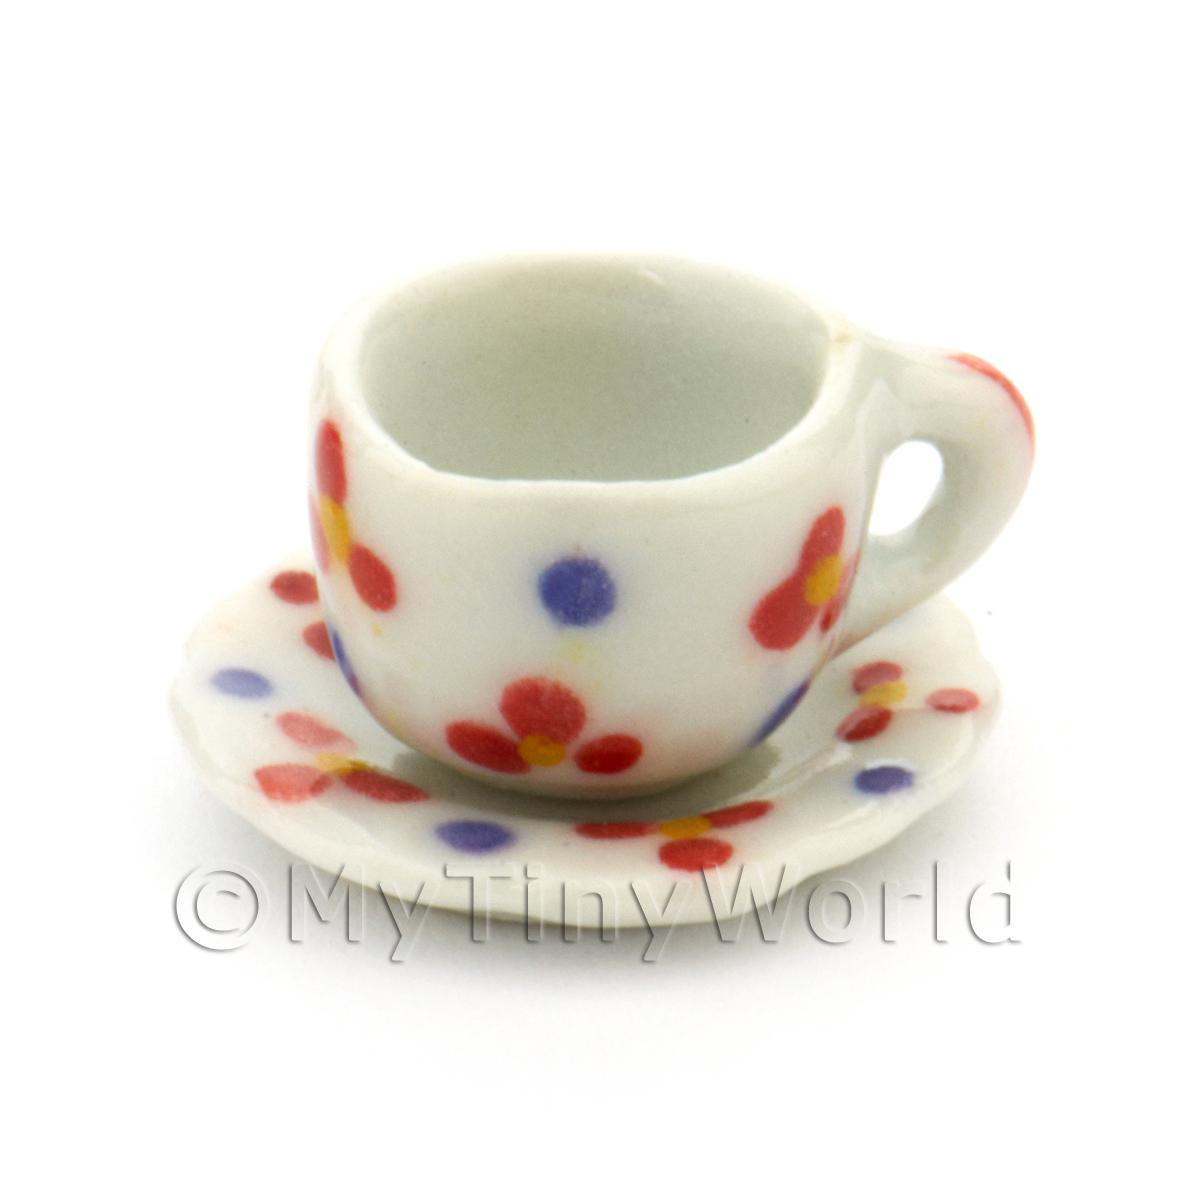 Dolls House Miniature Flower Design Ceramic Cup And Saucer